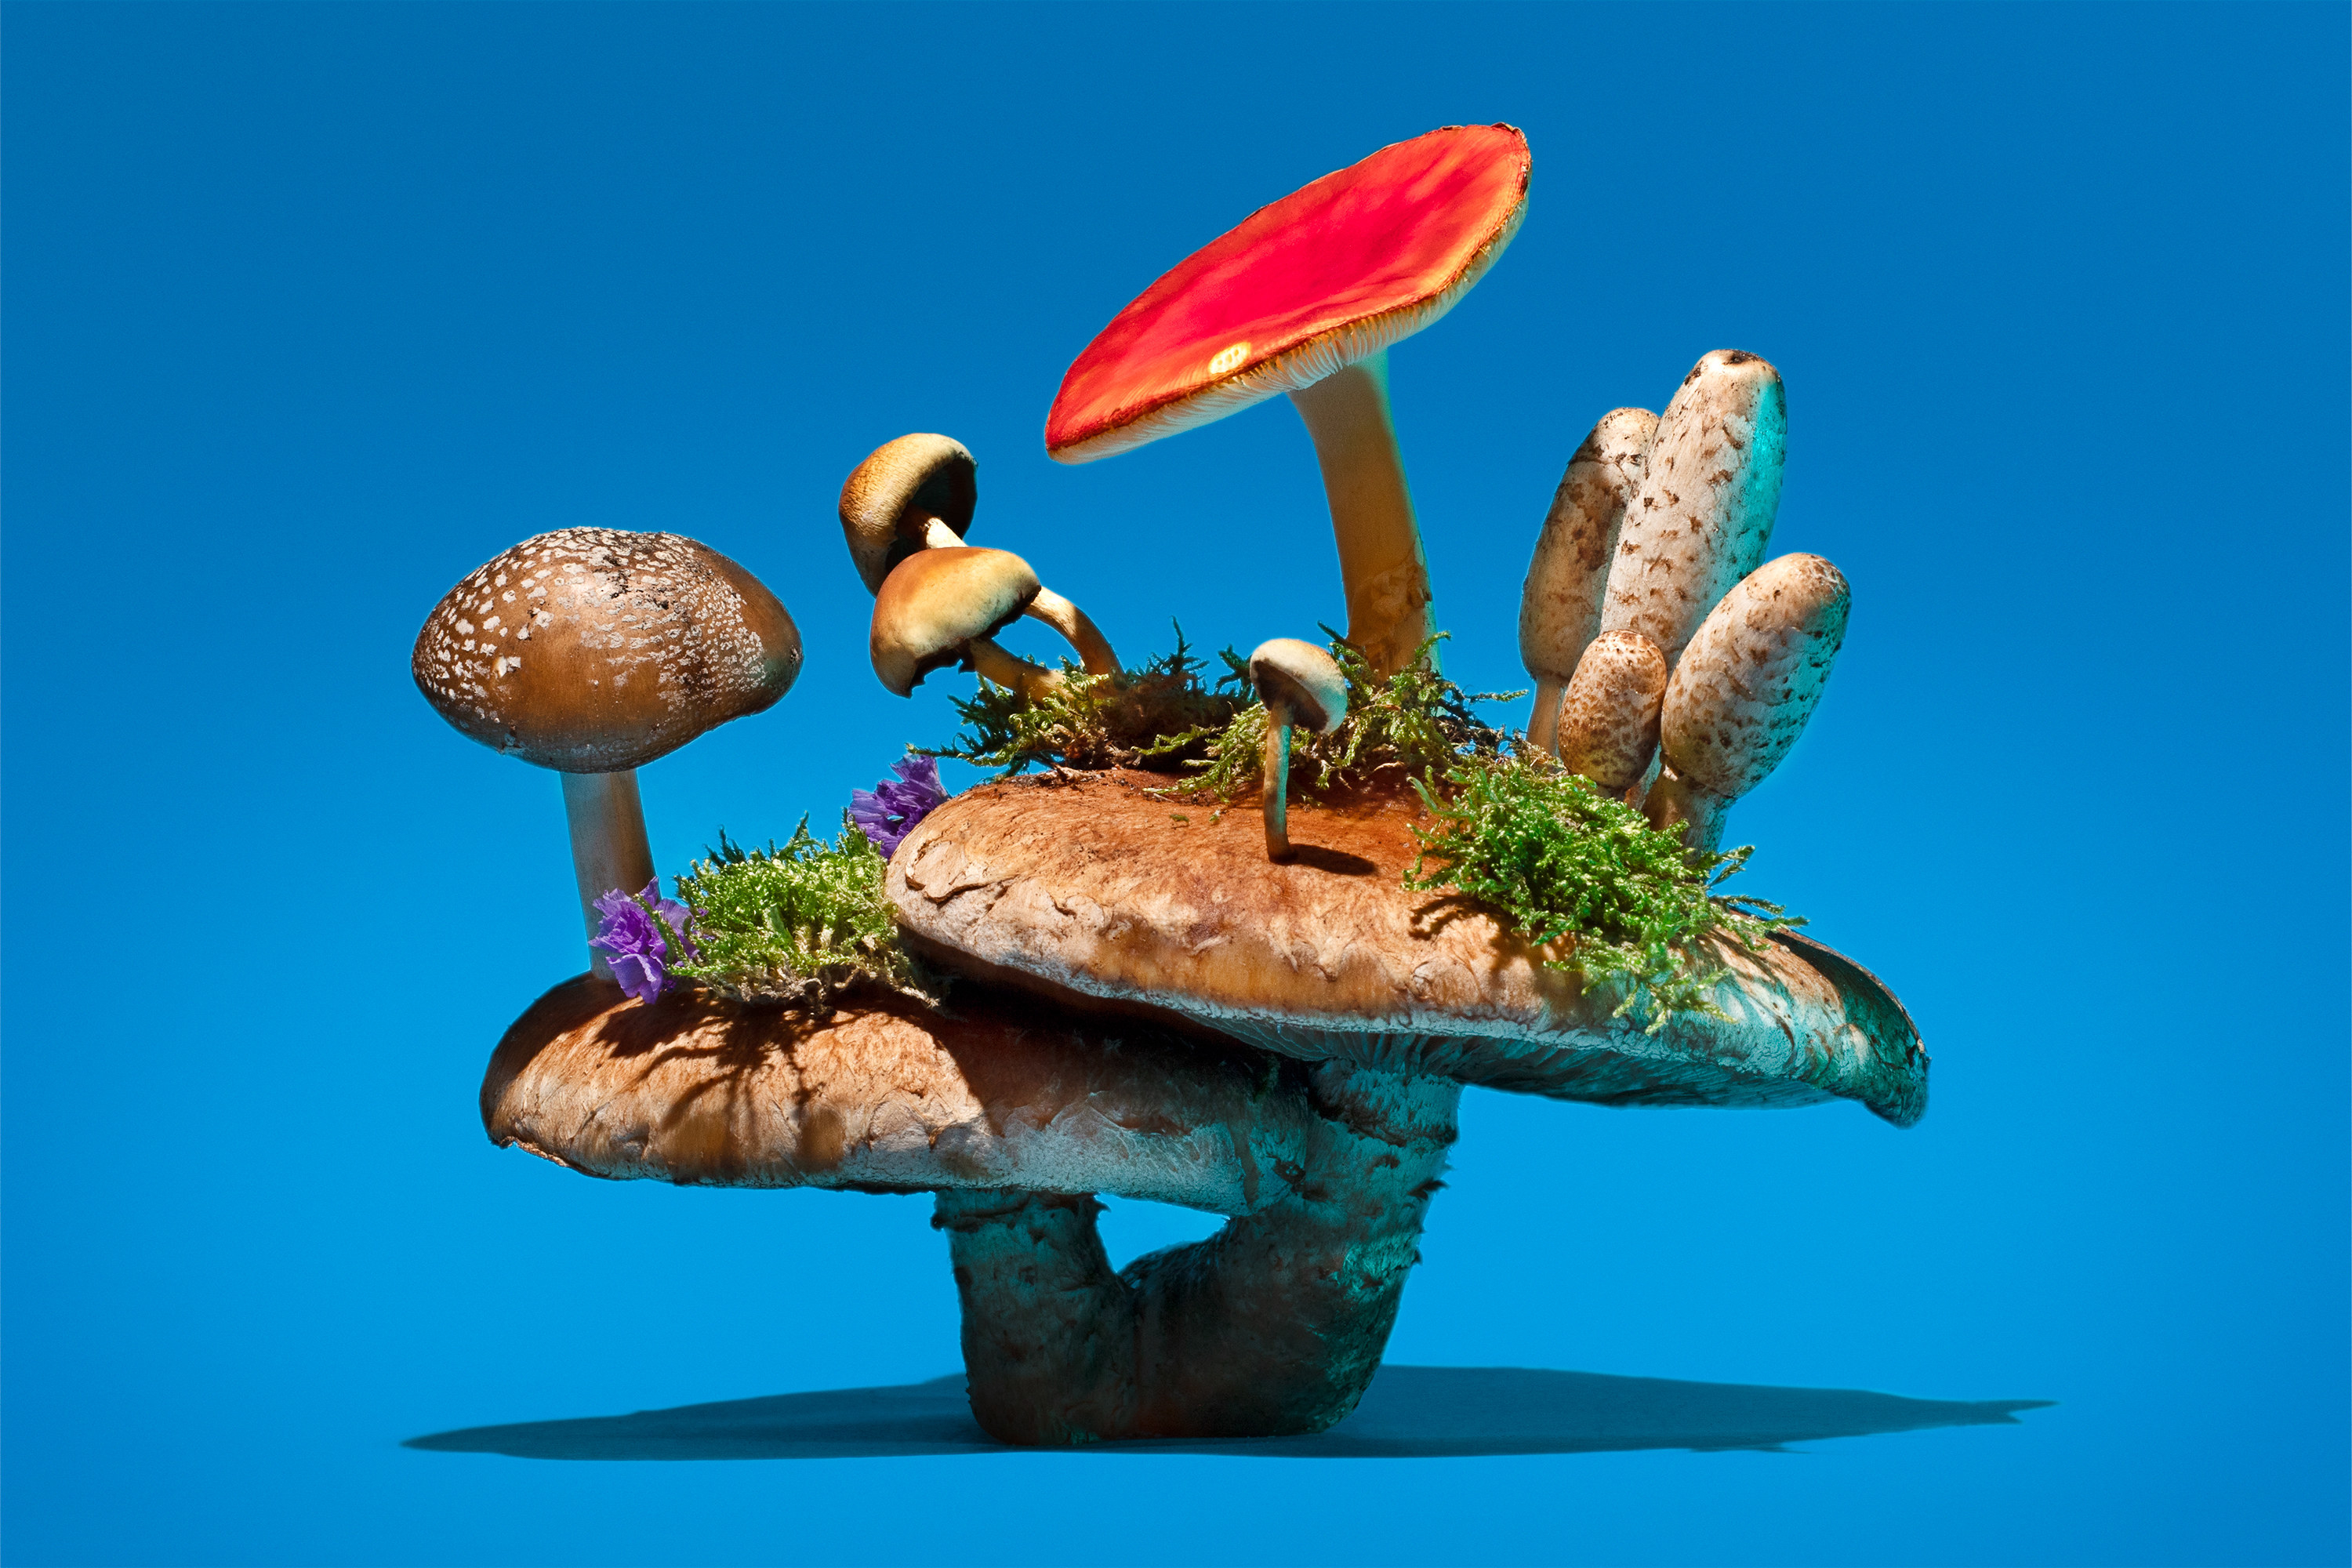 A pile of mushrooms stacked on top of one another